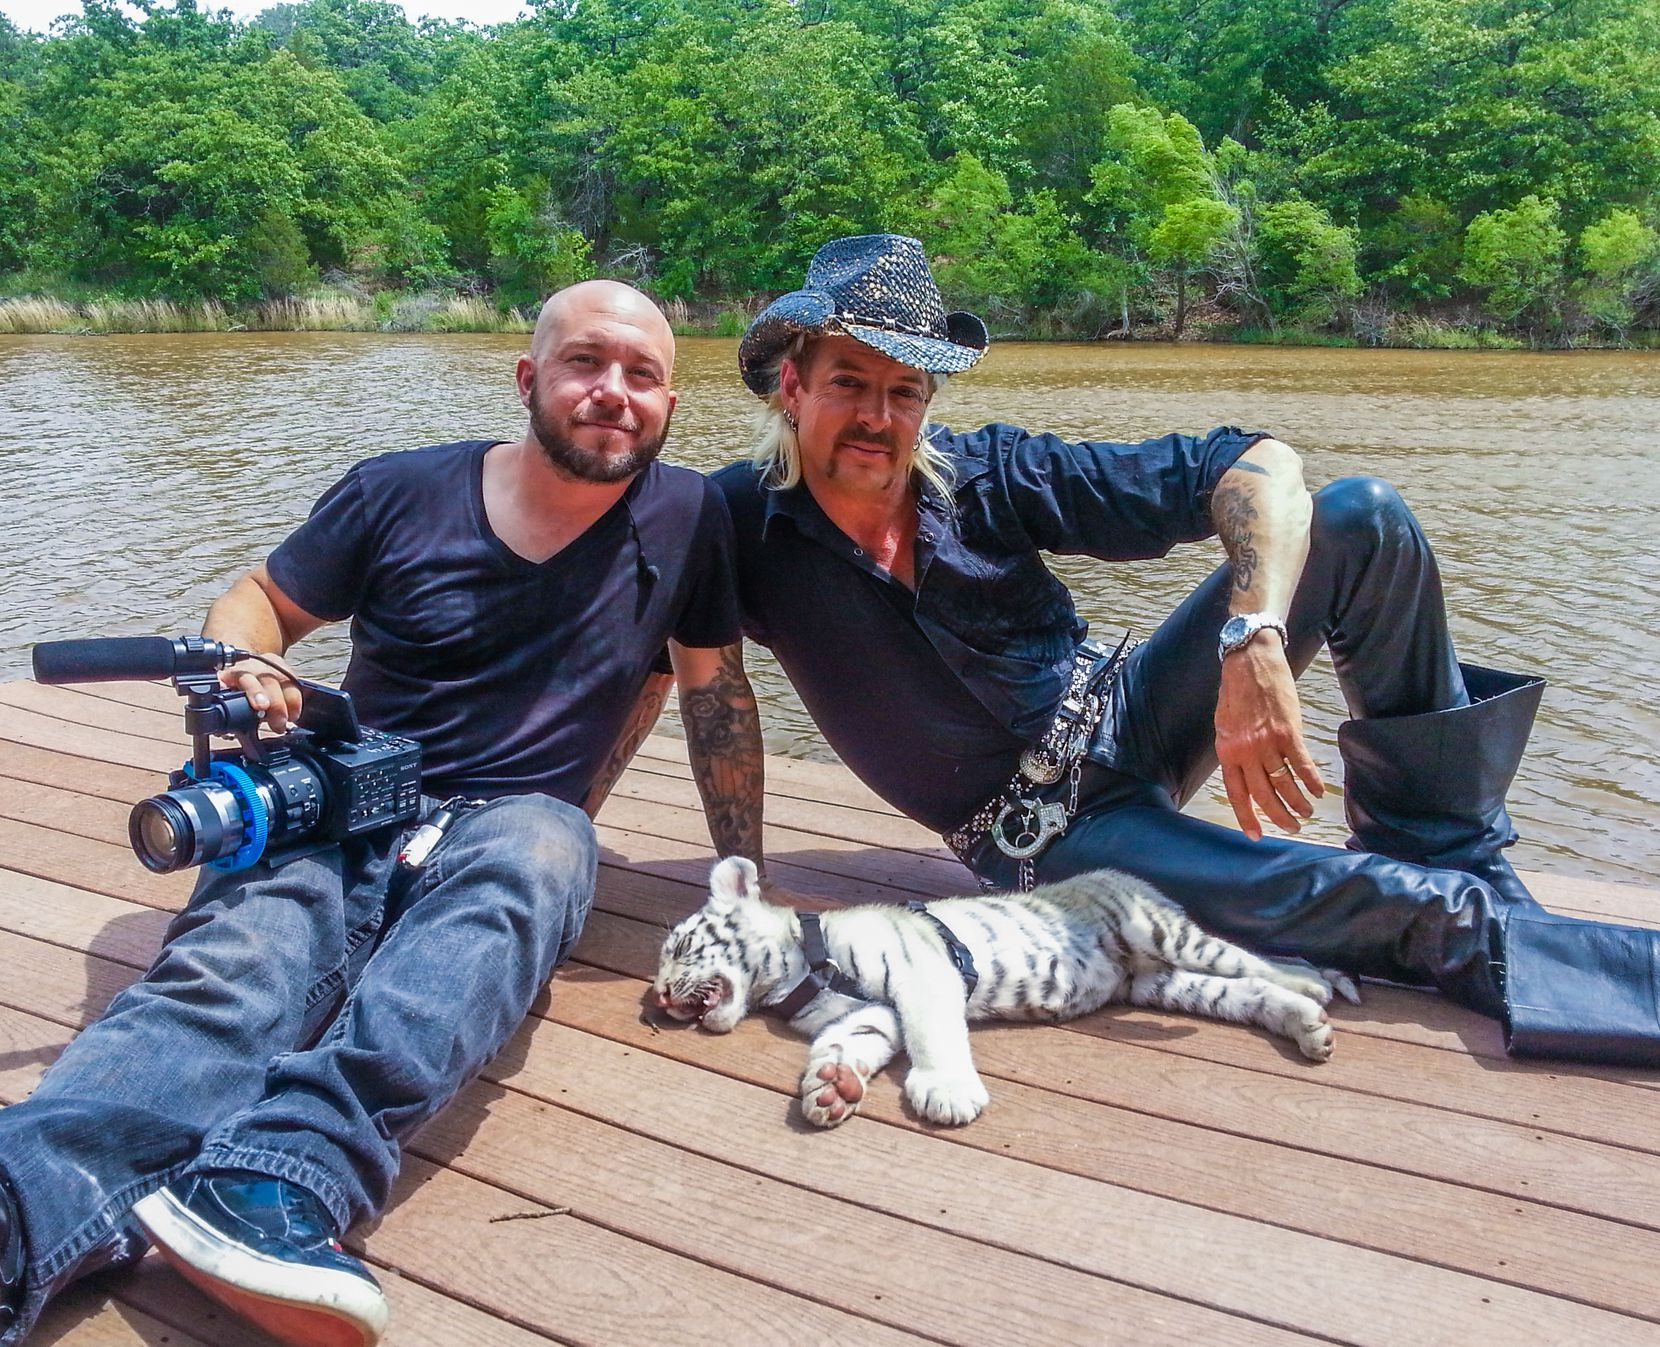 JT Barnett (left) spent several months filming with Joe Exotic from 2012 to 2014 and even shot some of his country music videos.